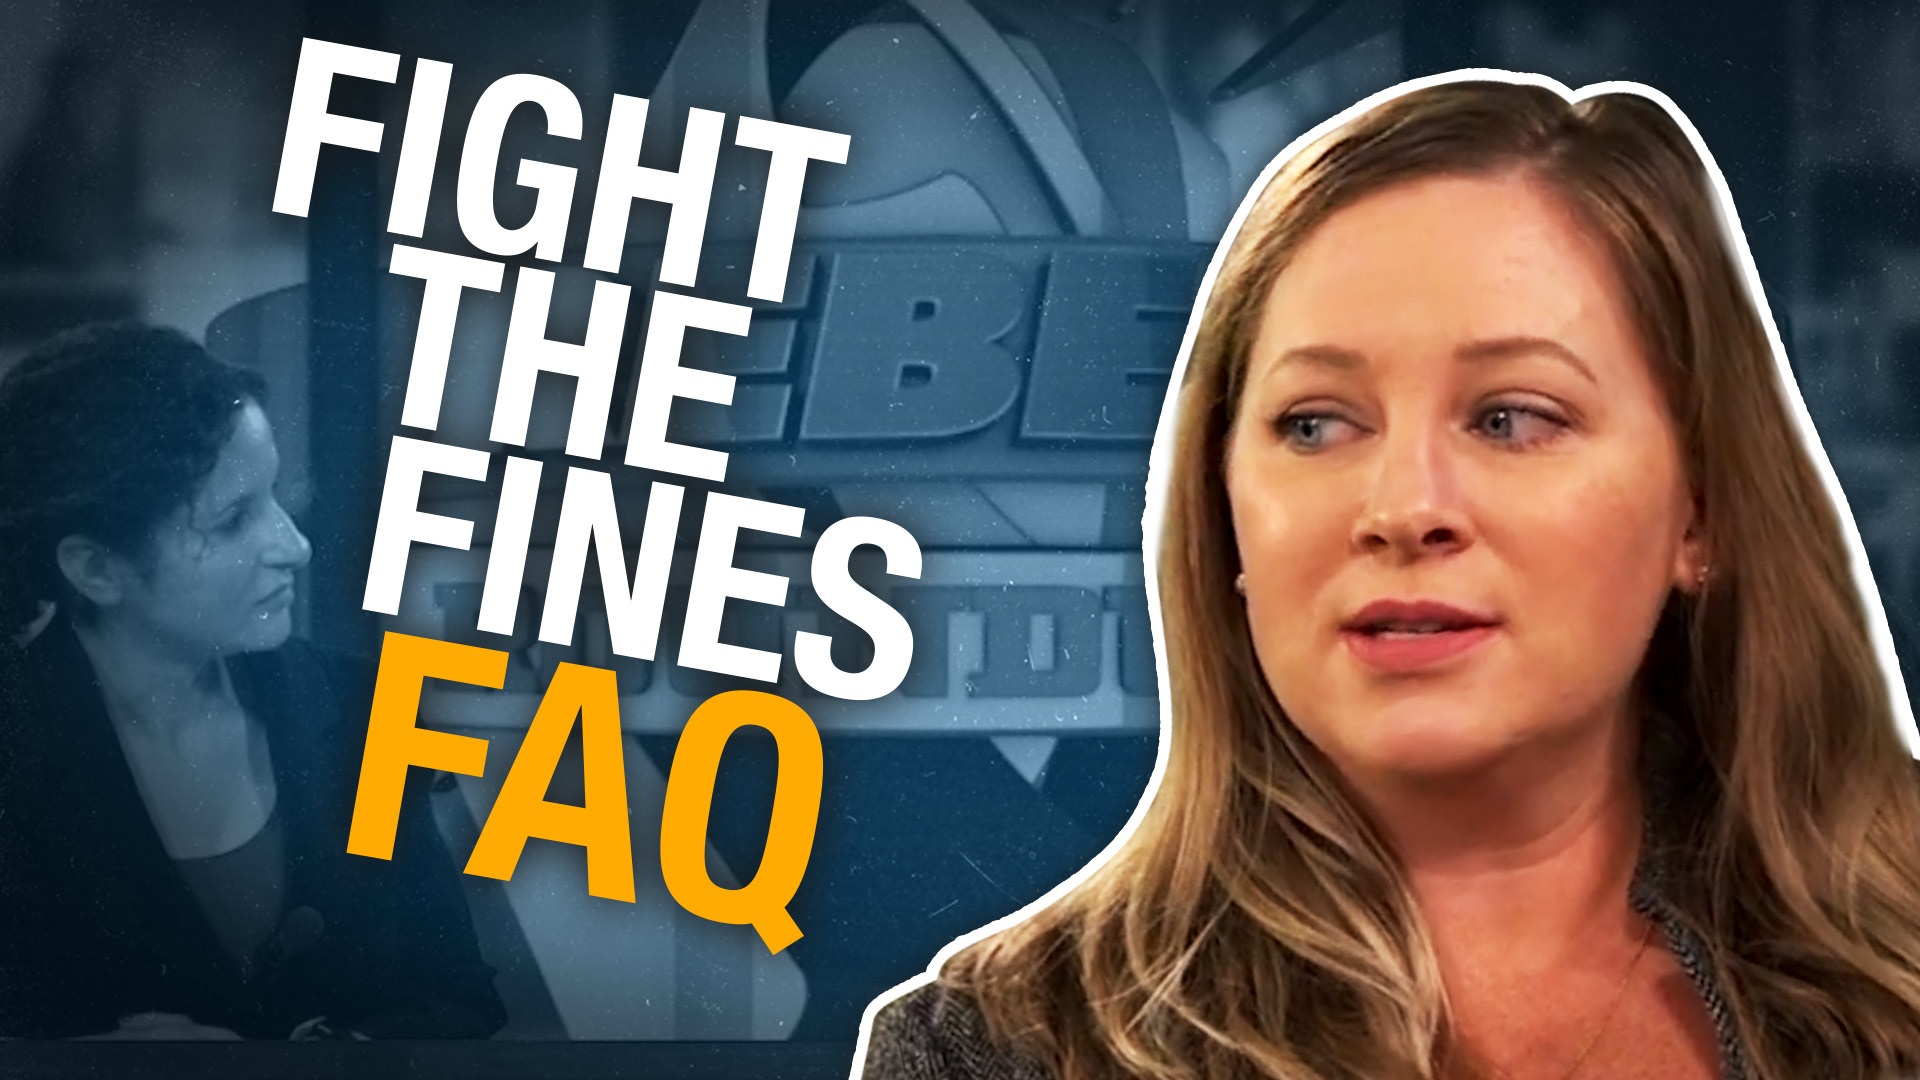 FIGHT THE FINES: Rebel's legal team answers the most commonly asked questions on COVID fines